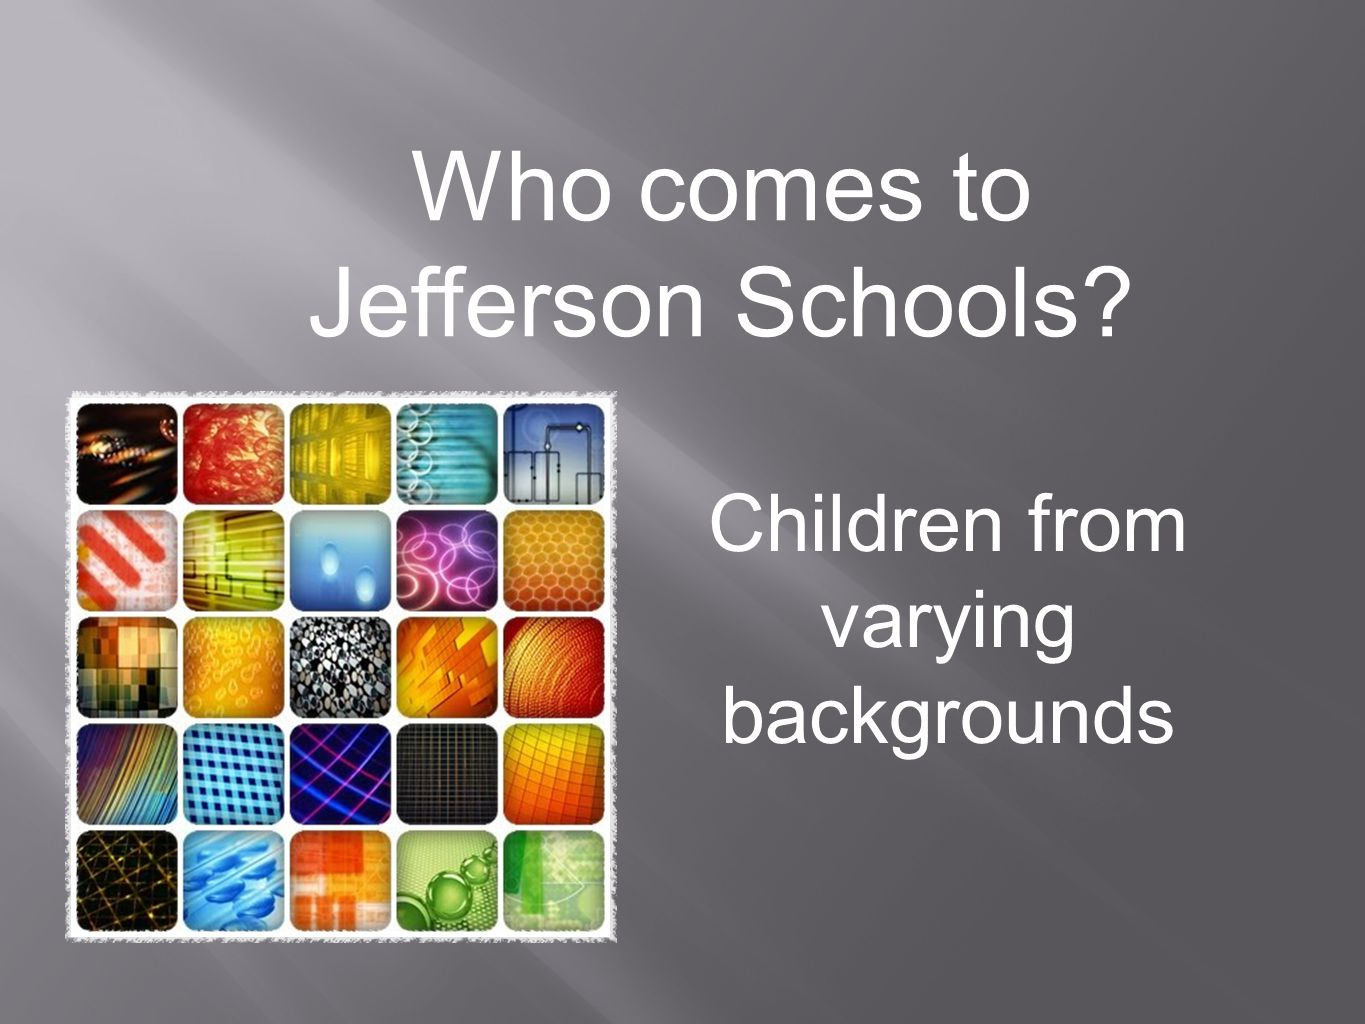 Who comes to Jefferson Schools? Children from varying backgrounds